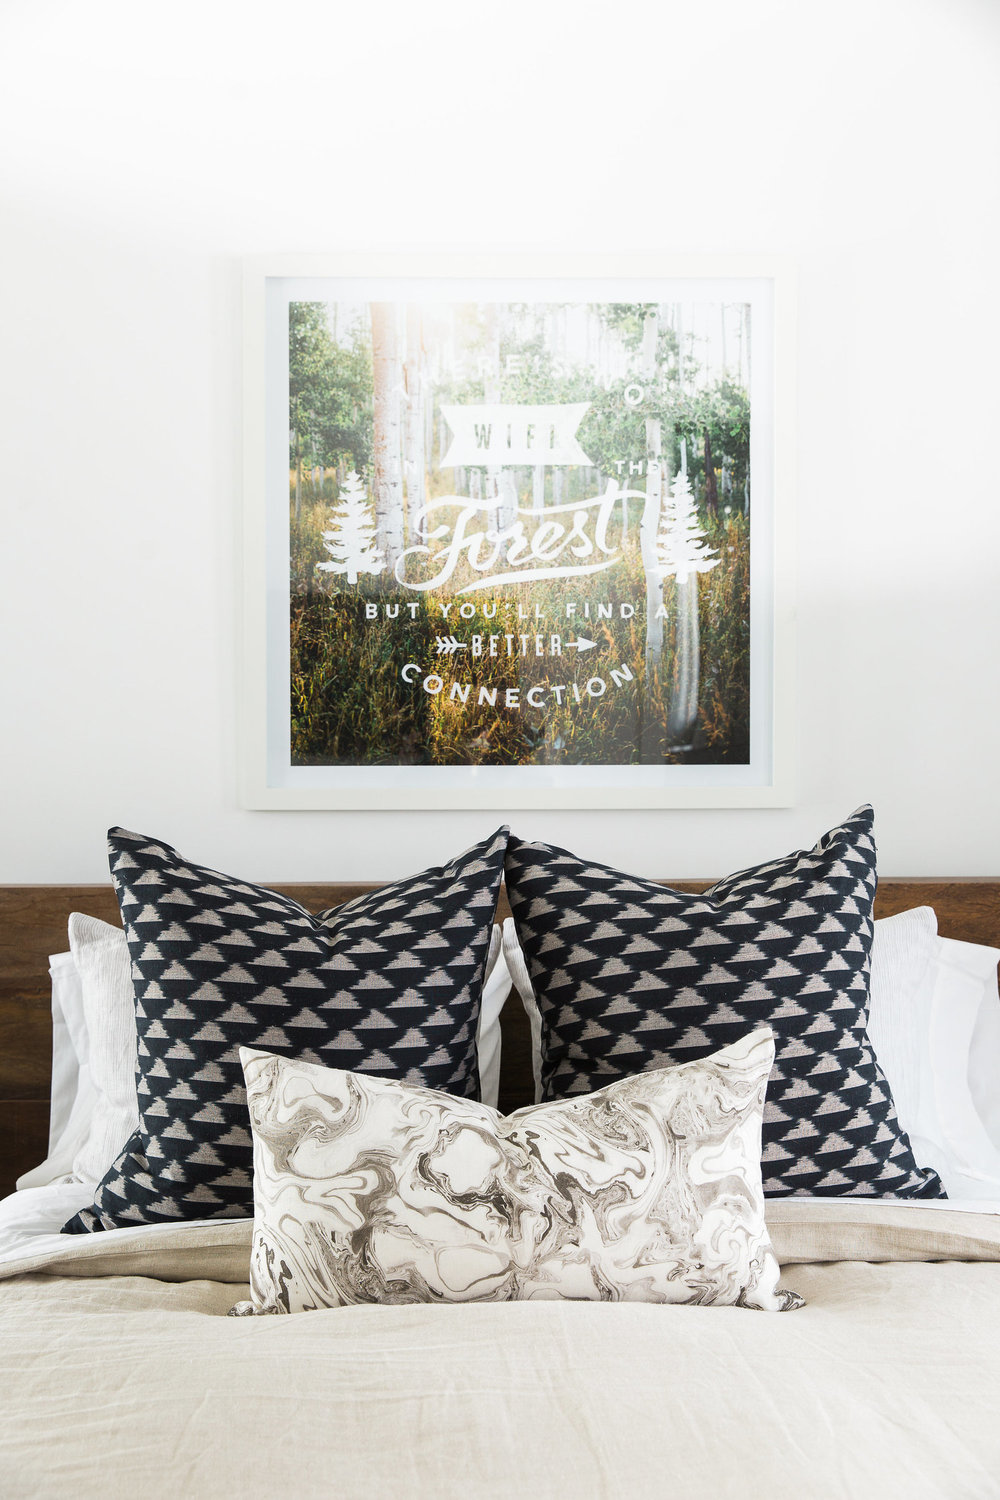 Decorative pillows on bed beneath wall art